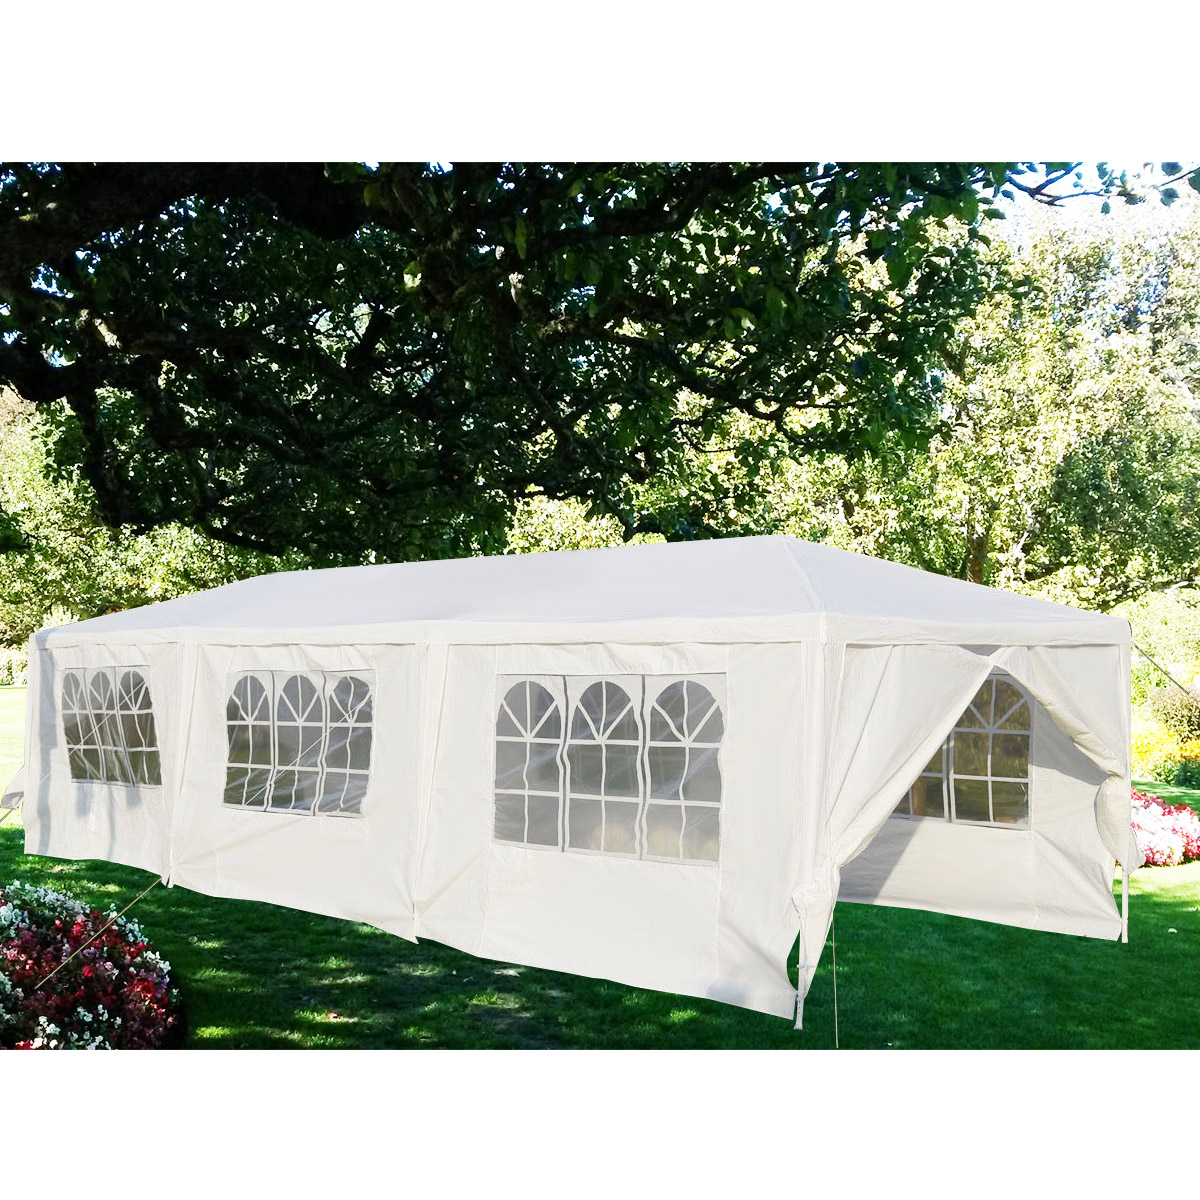 Gymax White Wedding Tent 10'x30'Outdoor Party Canopy Events - image 10 of 10